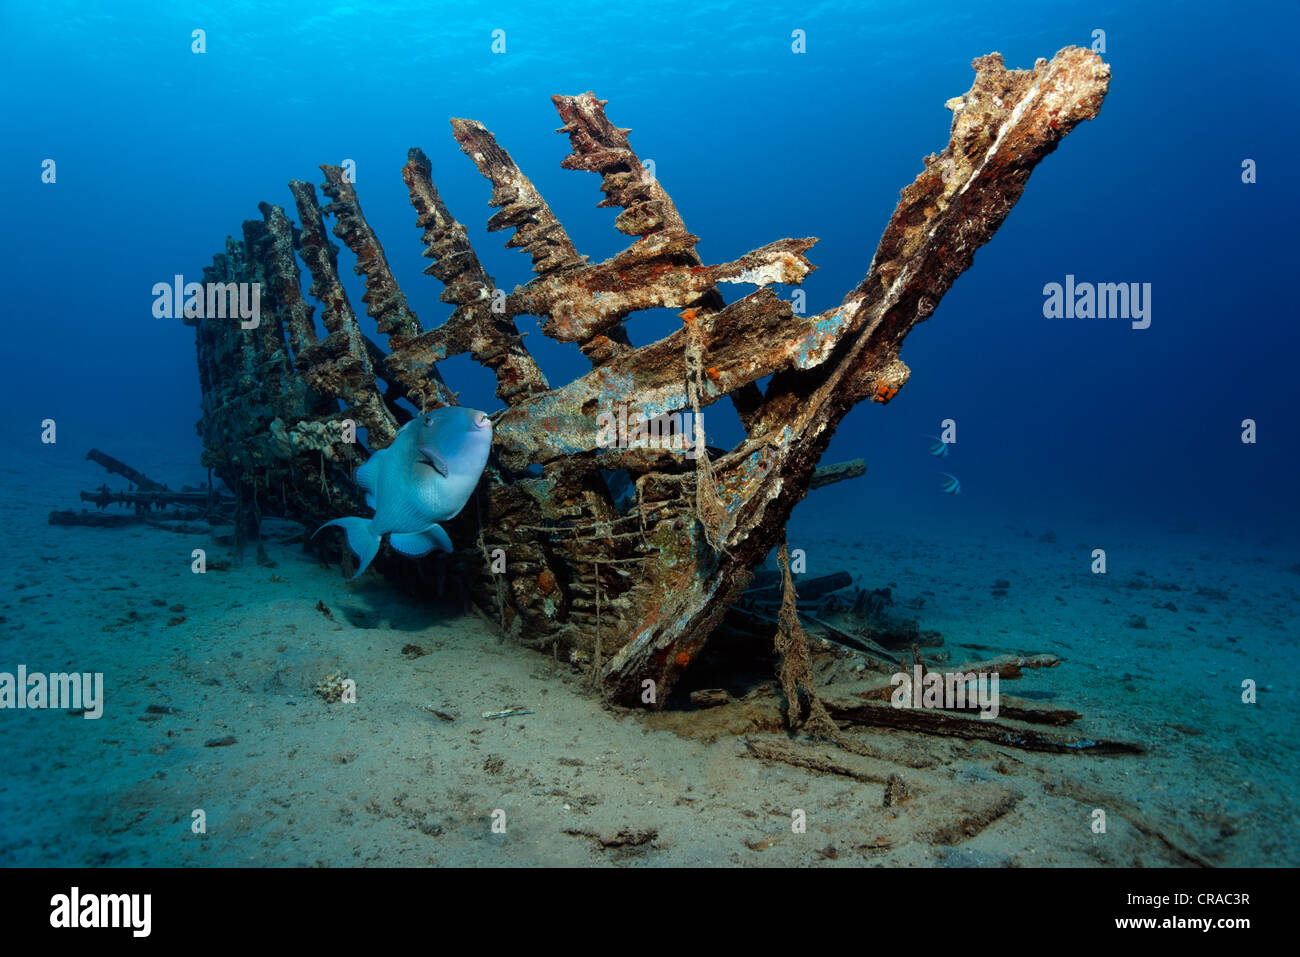 Blue, Trigger fish or Yellow-Spotted Triggerfish (Pseudobalistes fuscus) in front of a wooden ship wreck, Makadi - Stock Image